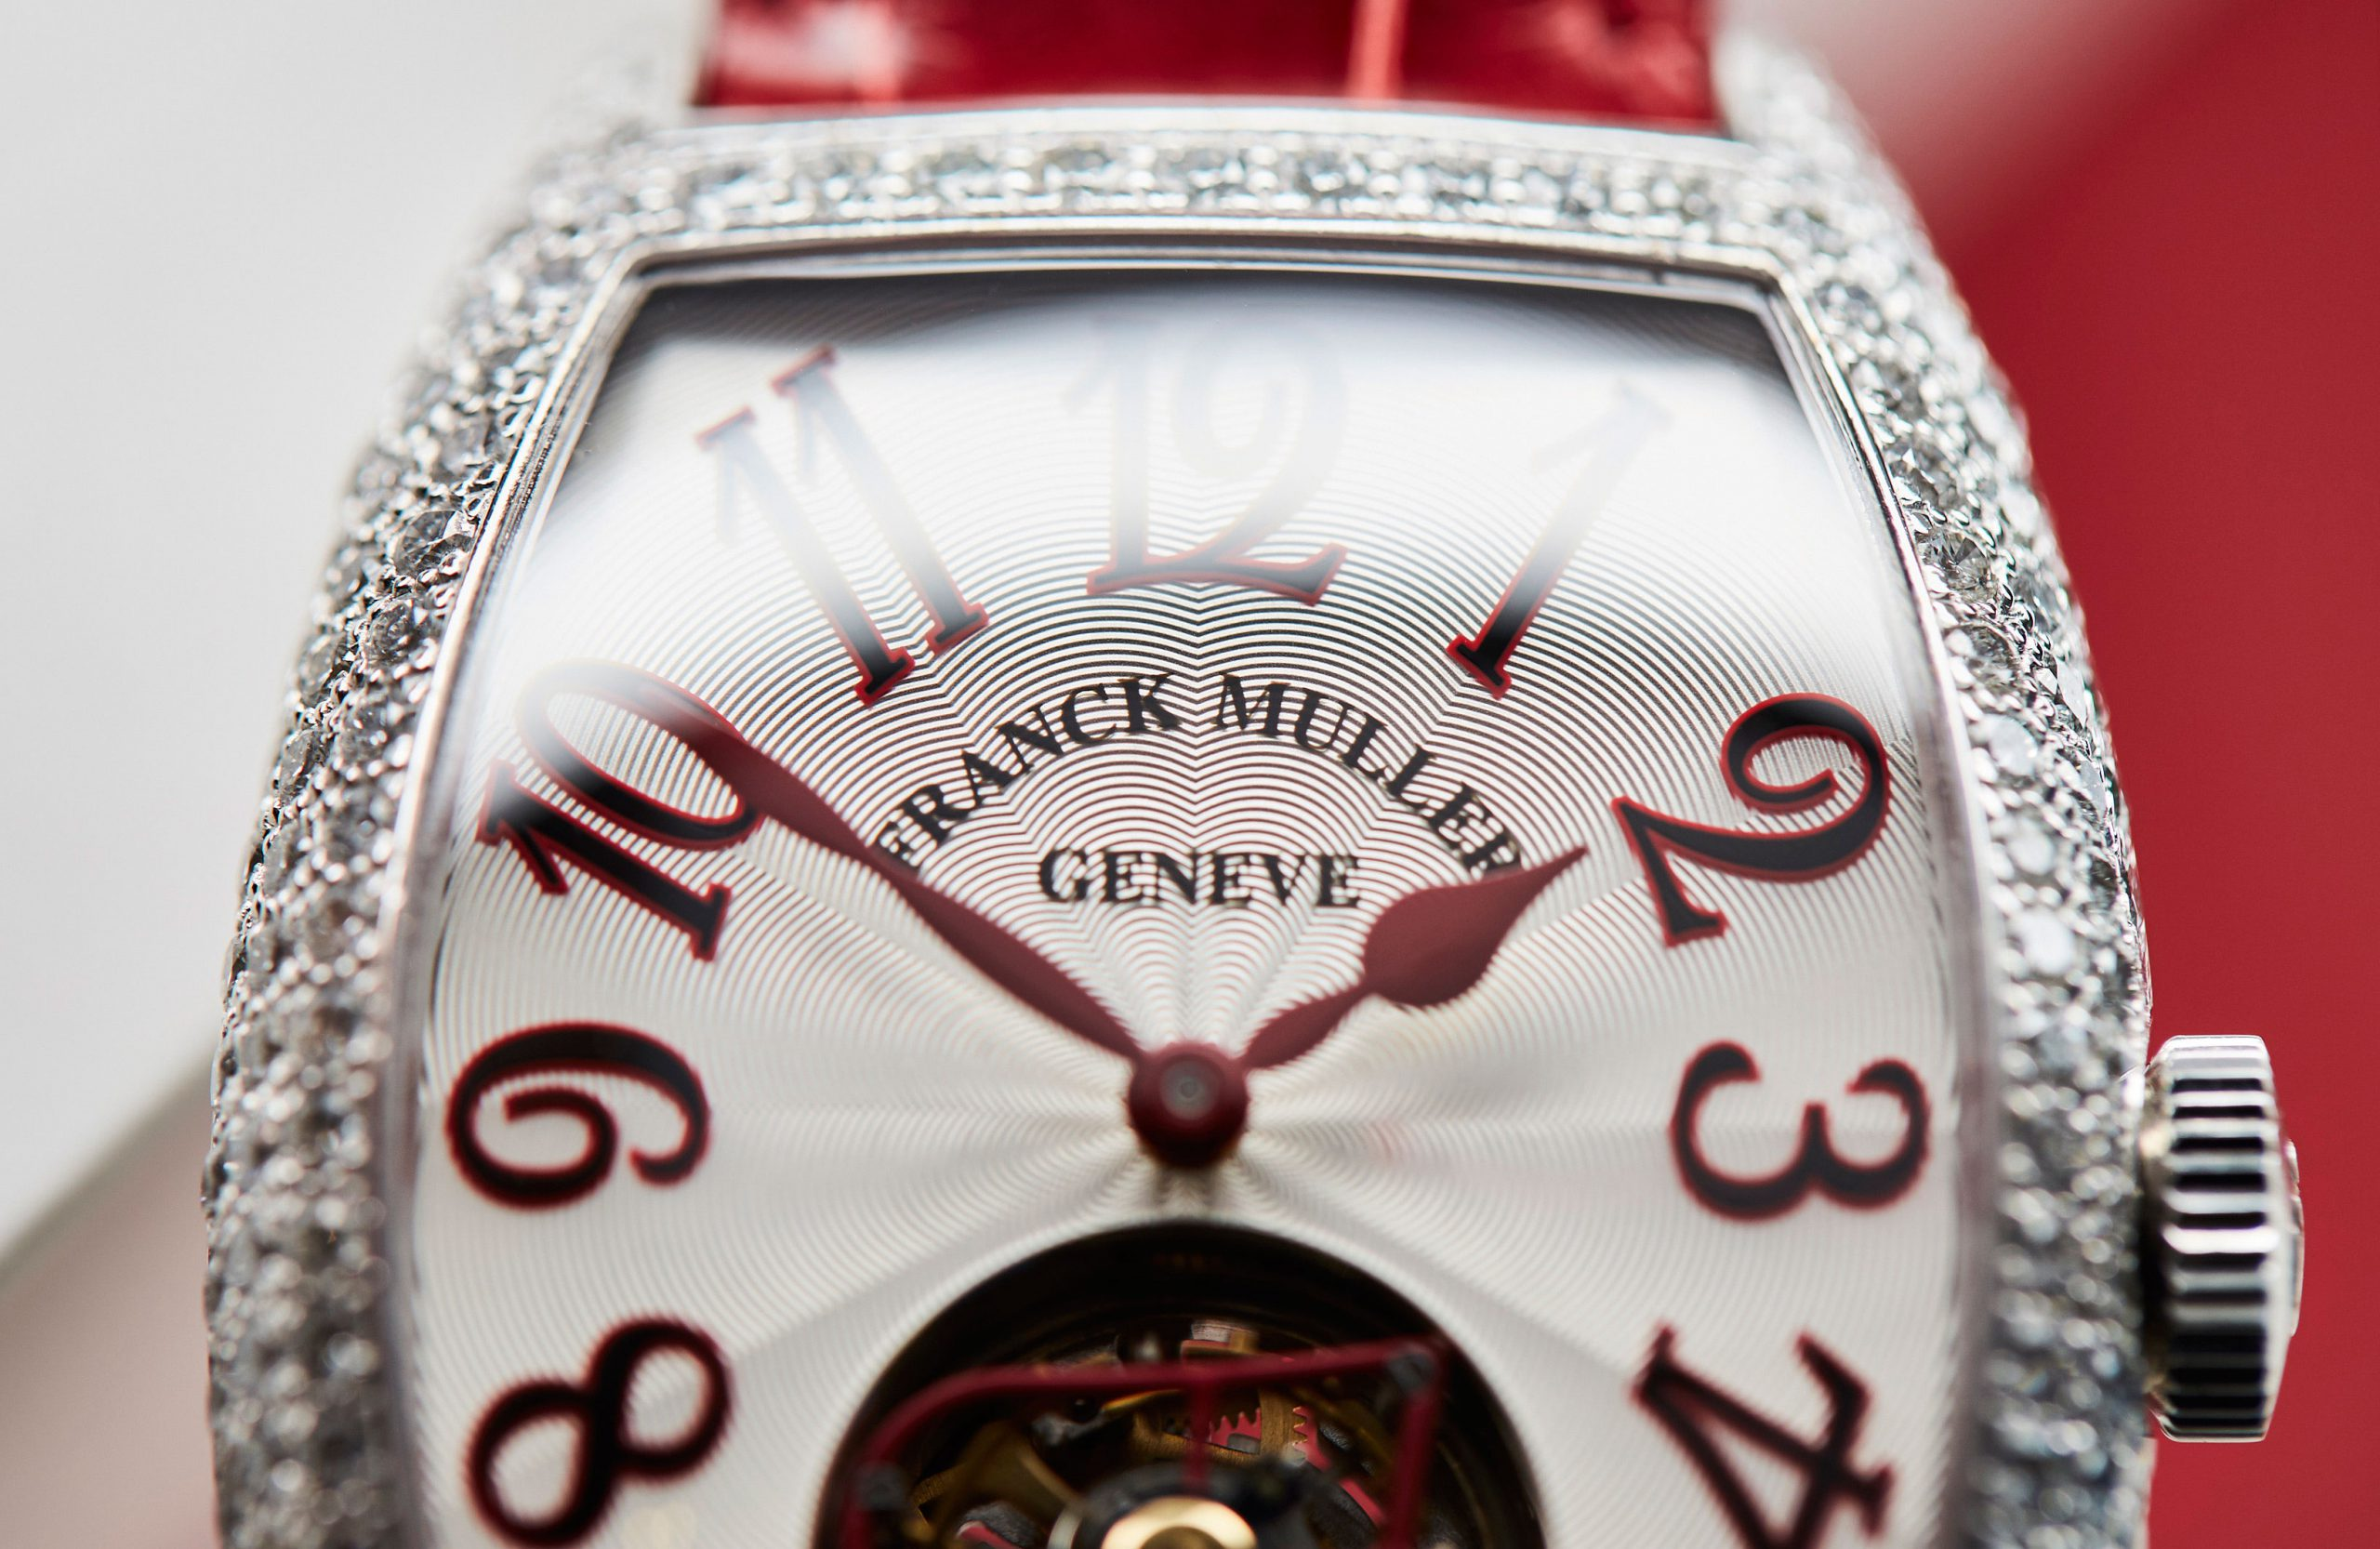 Franck Muller offers watchmaking that comes from the heart